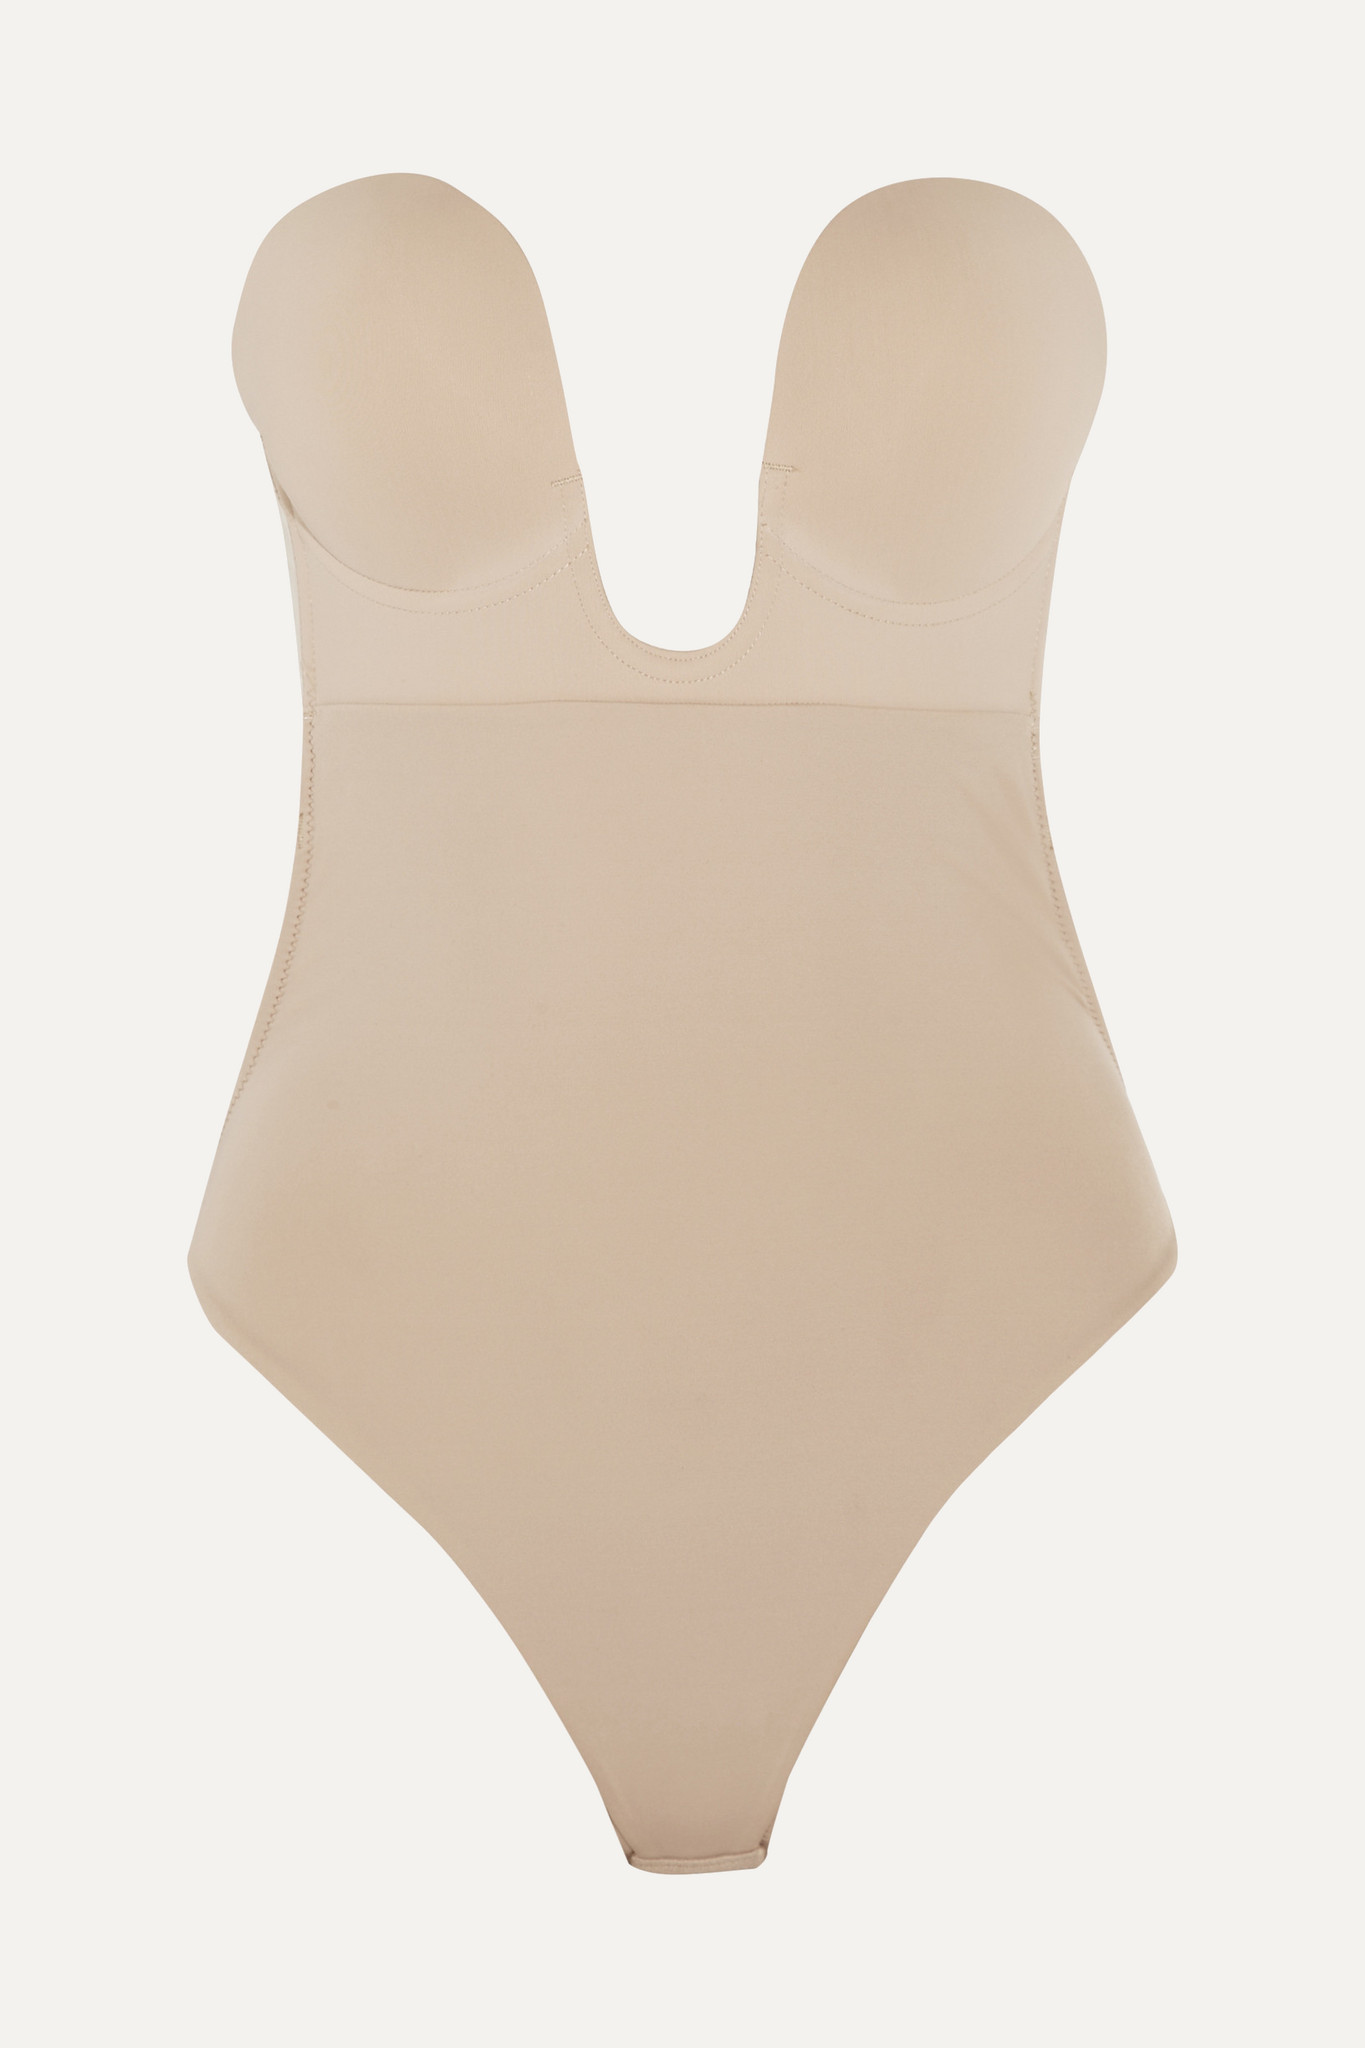 FASHION FORMS - U-plunge Self-adhesive Backless Thong Bodysuit - Neutrals - large